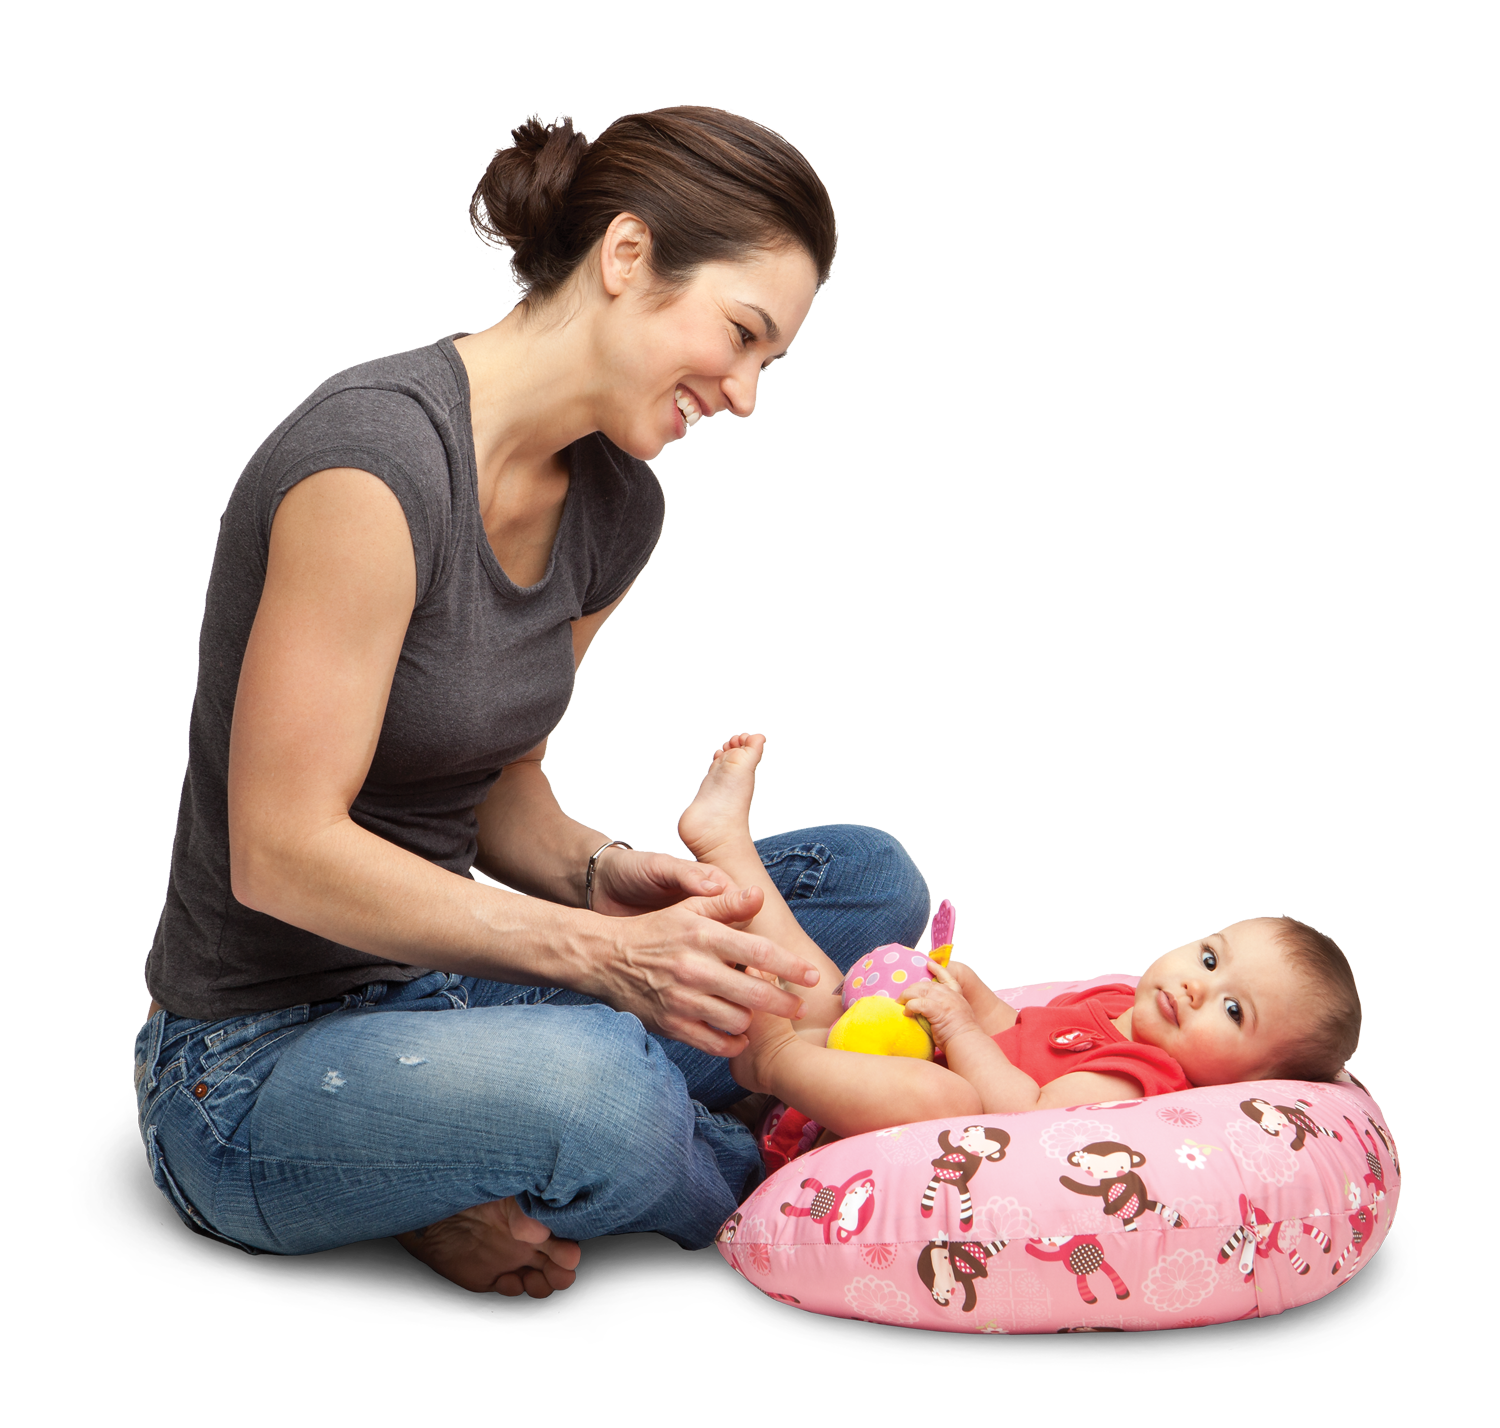 Mom png. And baby transparent images png black and white download